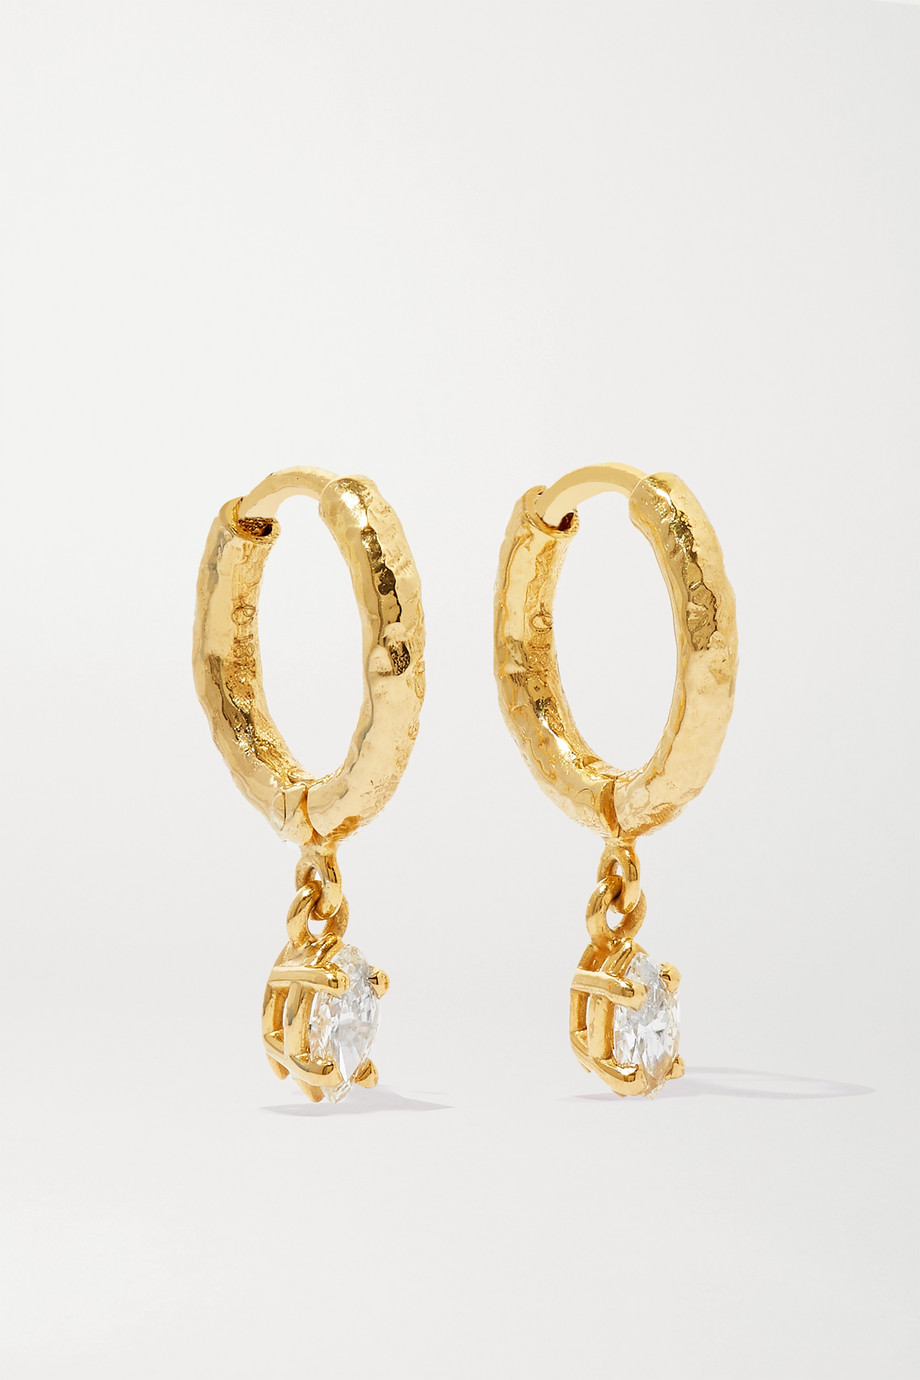 Octavia Elizabeth + NET SUSTAIN Micro Gabby 18-karat gold diamond hoop earrings